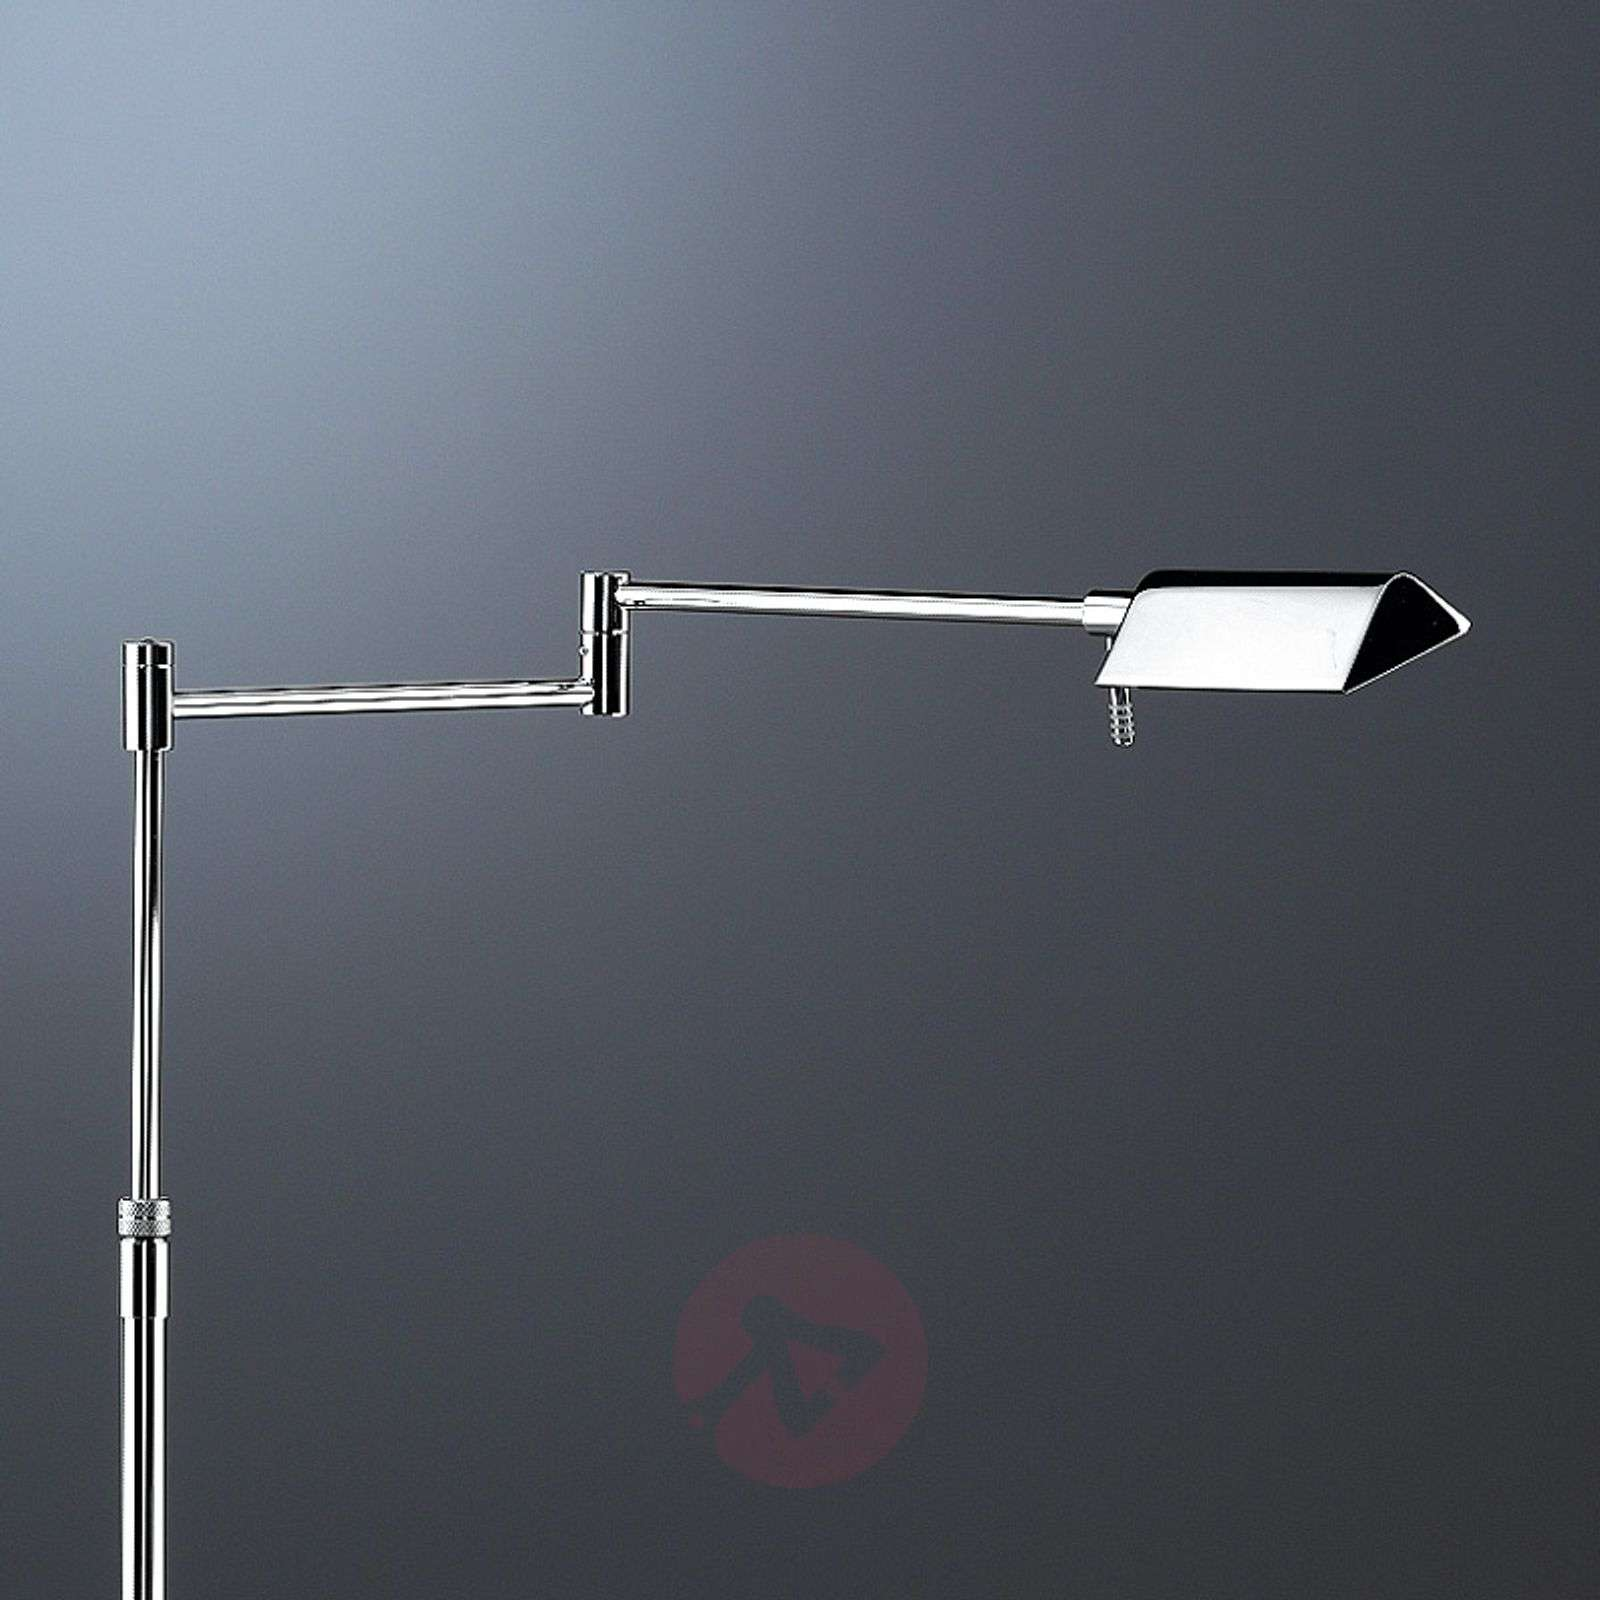 Jeremy LED floor lamp with lots of joints-4529059-01